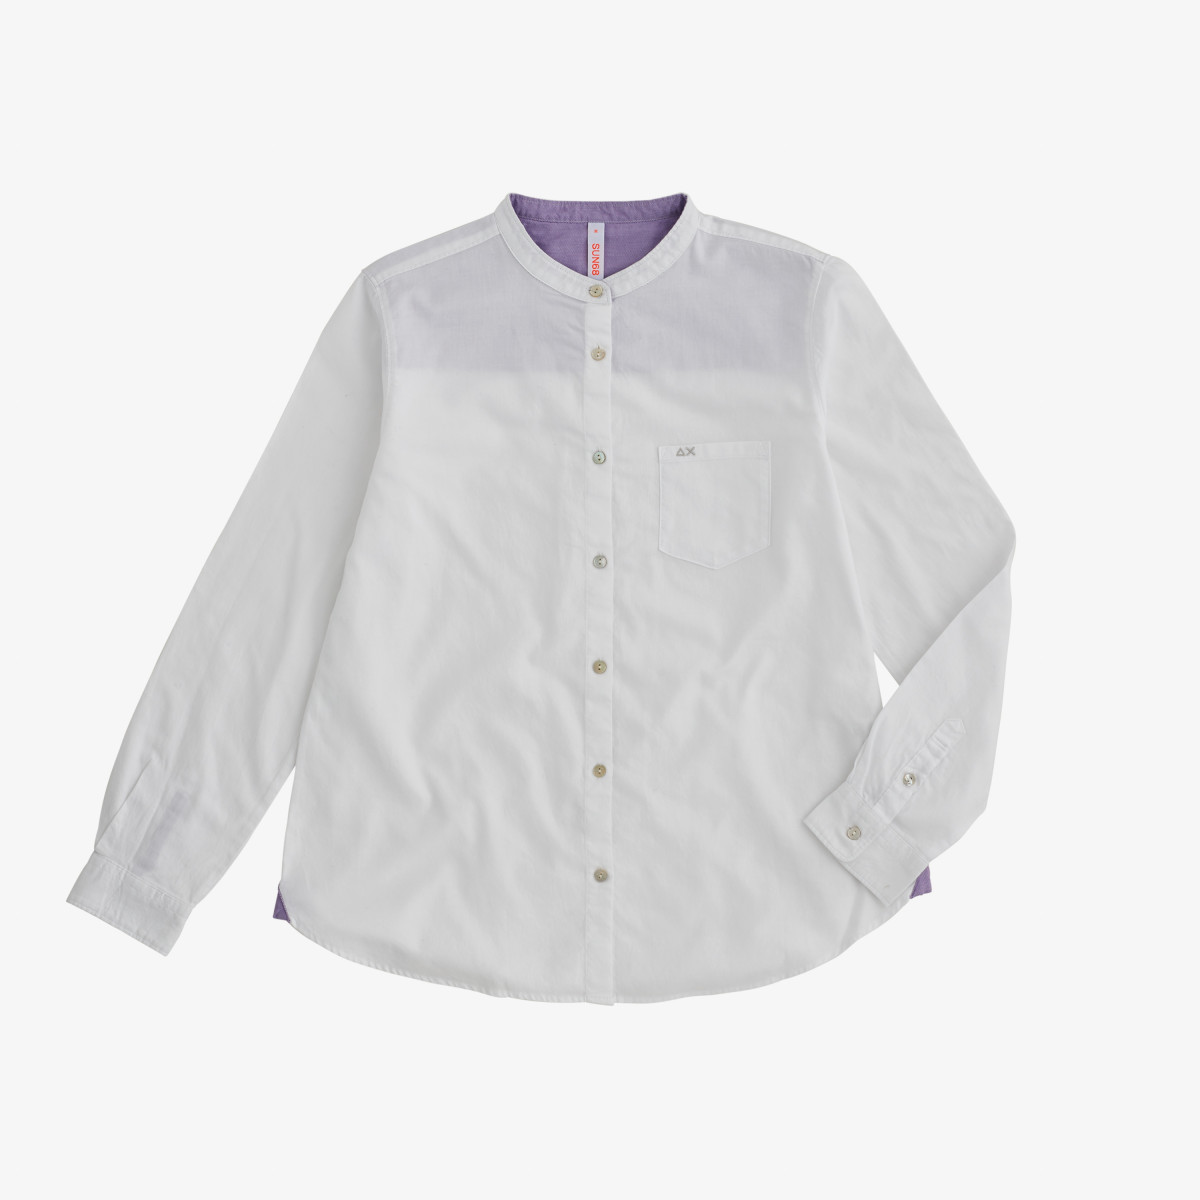 SHIRT KOREA COLLAR L/S WHITE